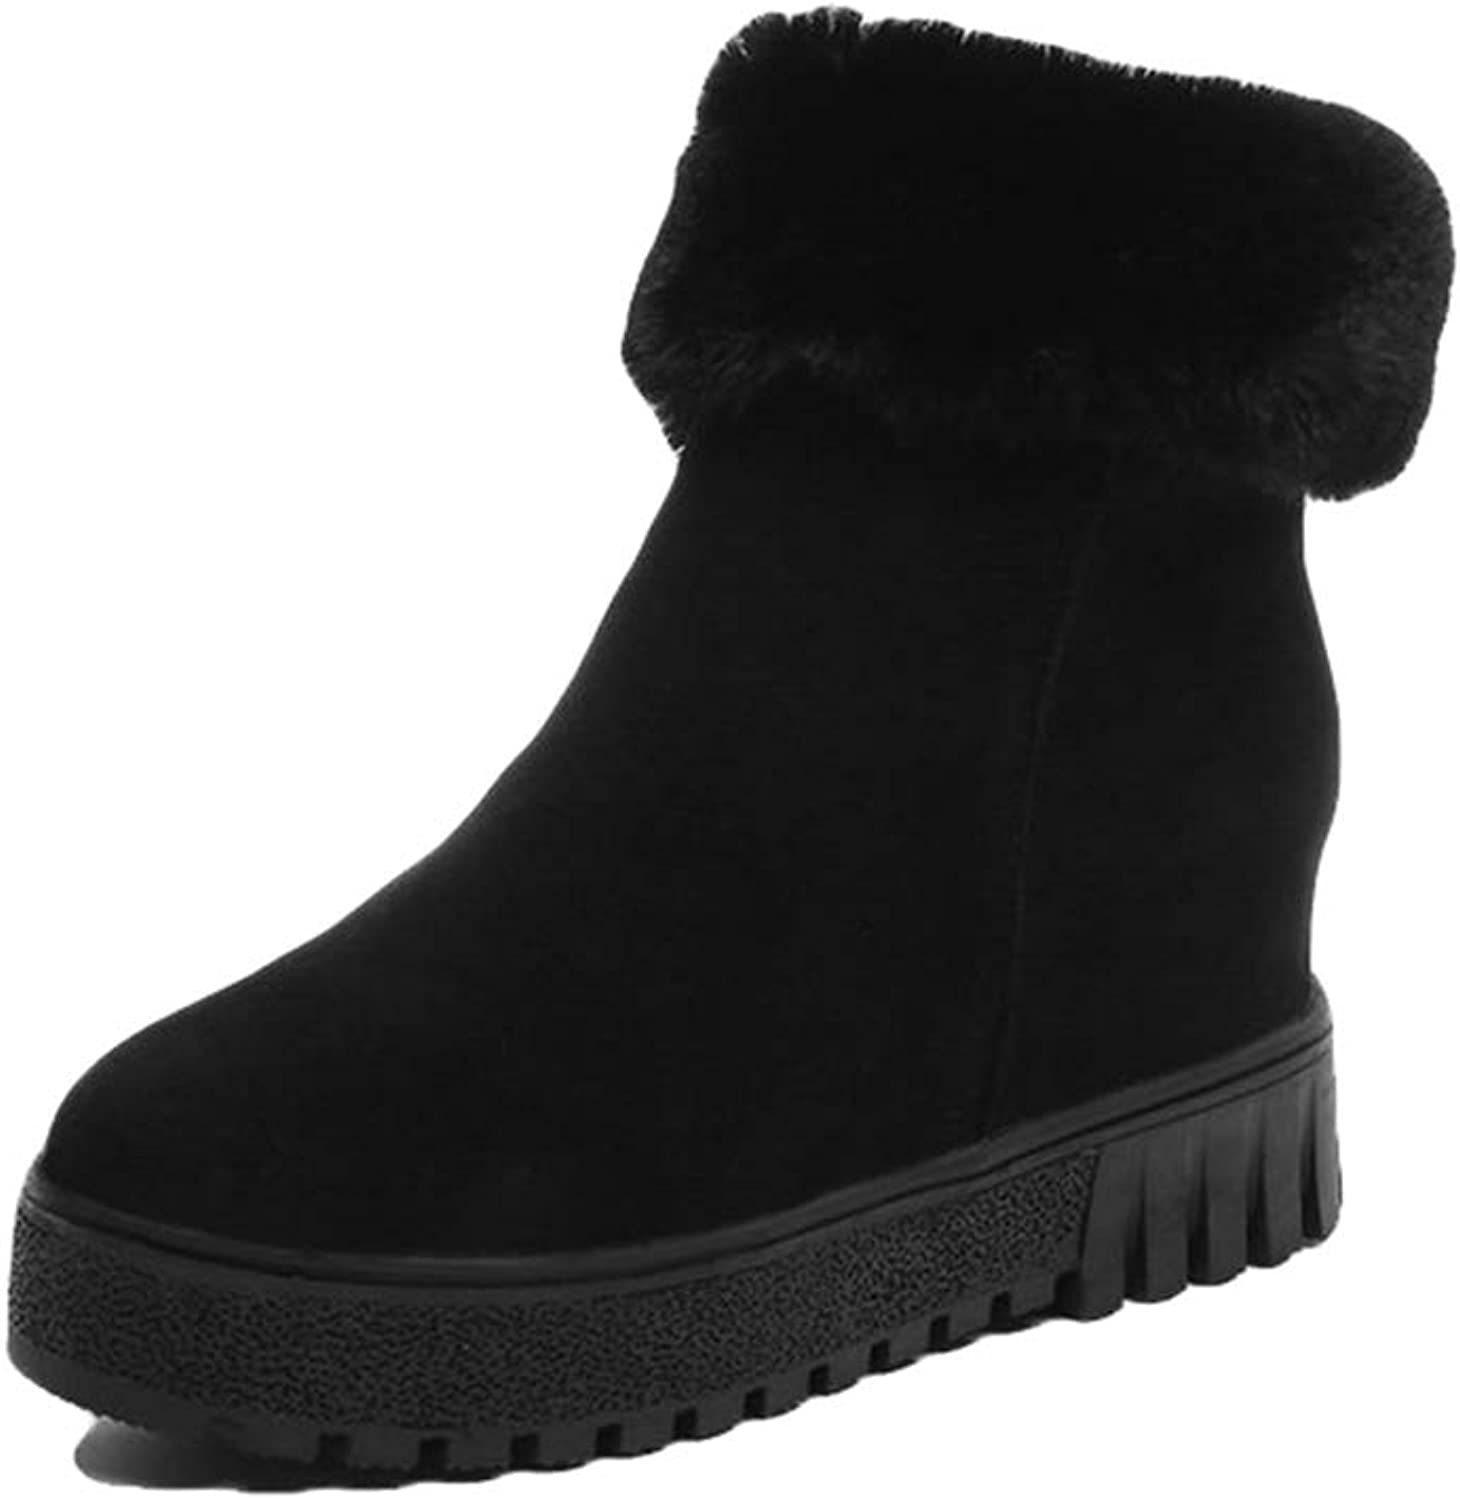 York Zhu Women's Faux Fur Boots,Winter Snow Boot Suede Flat Ankle Boots